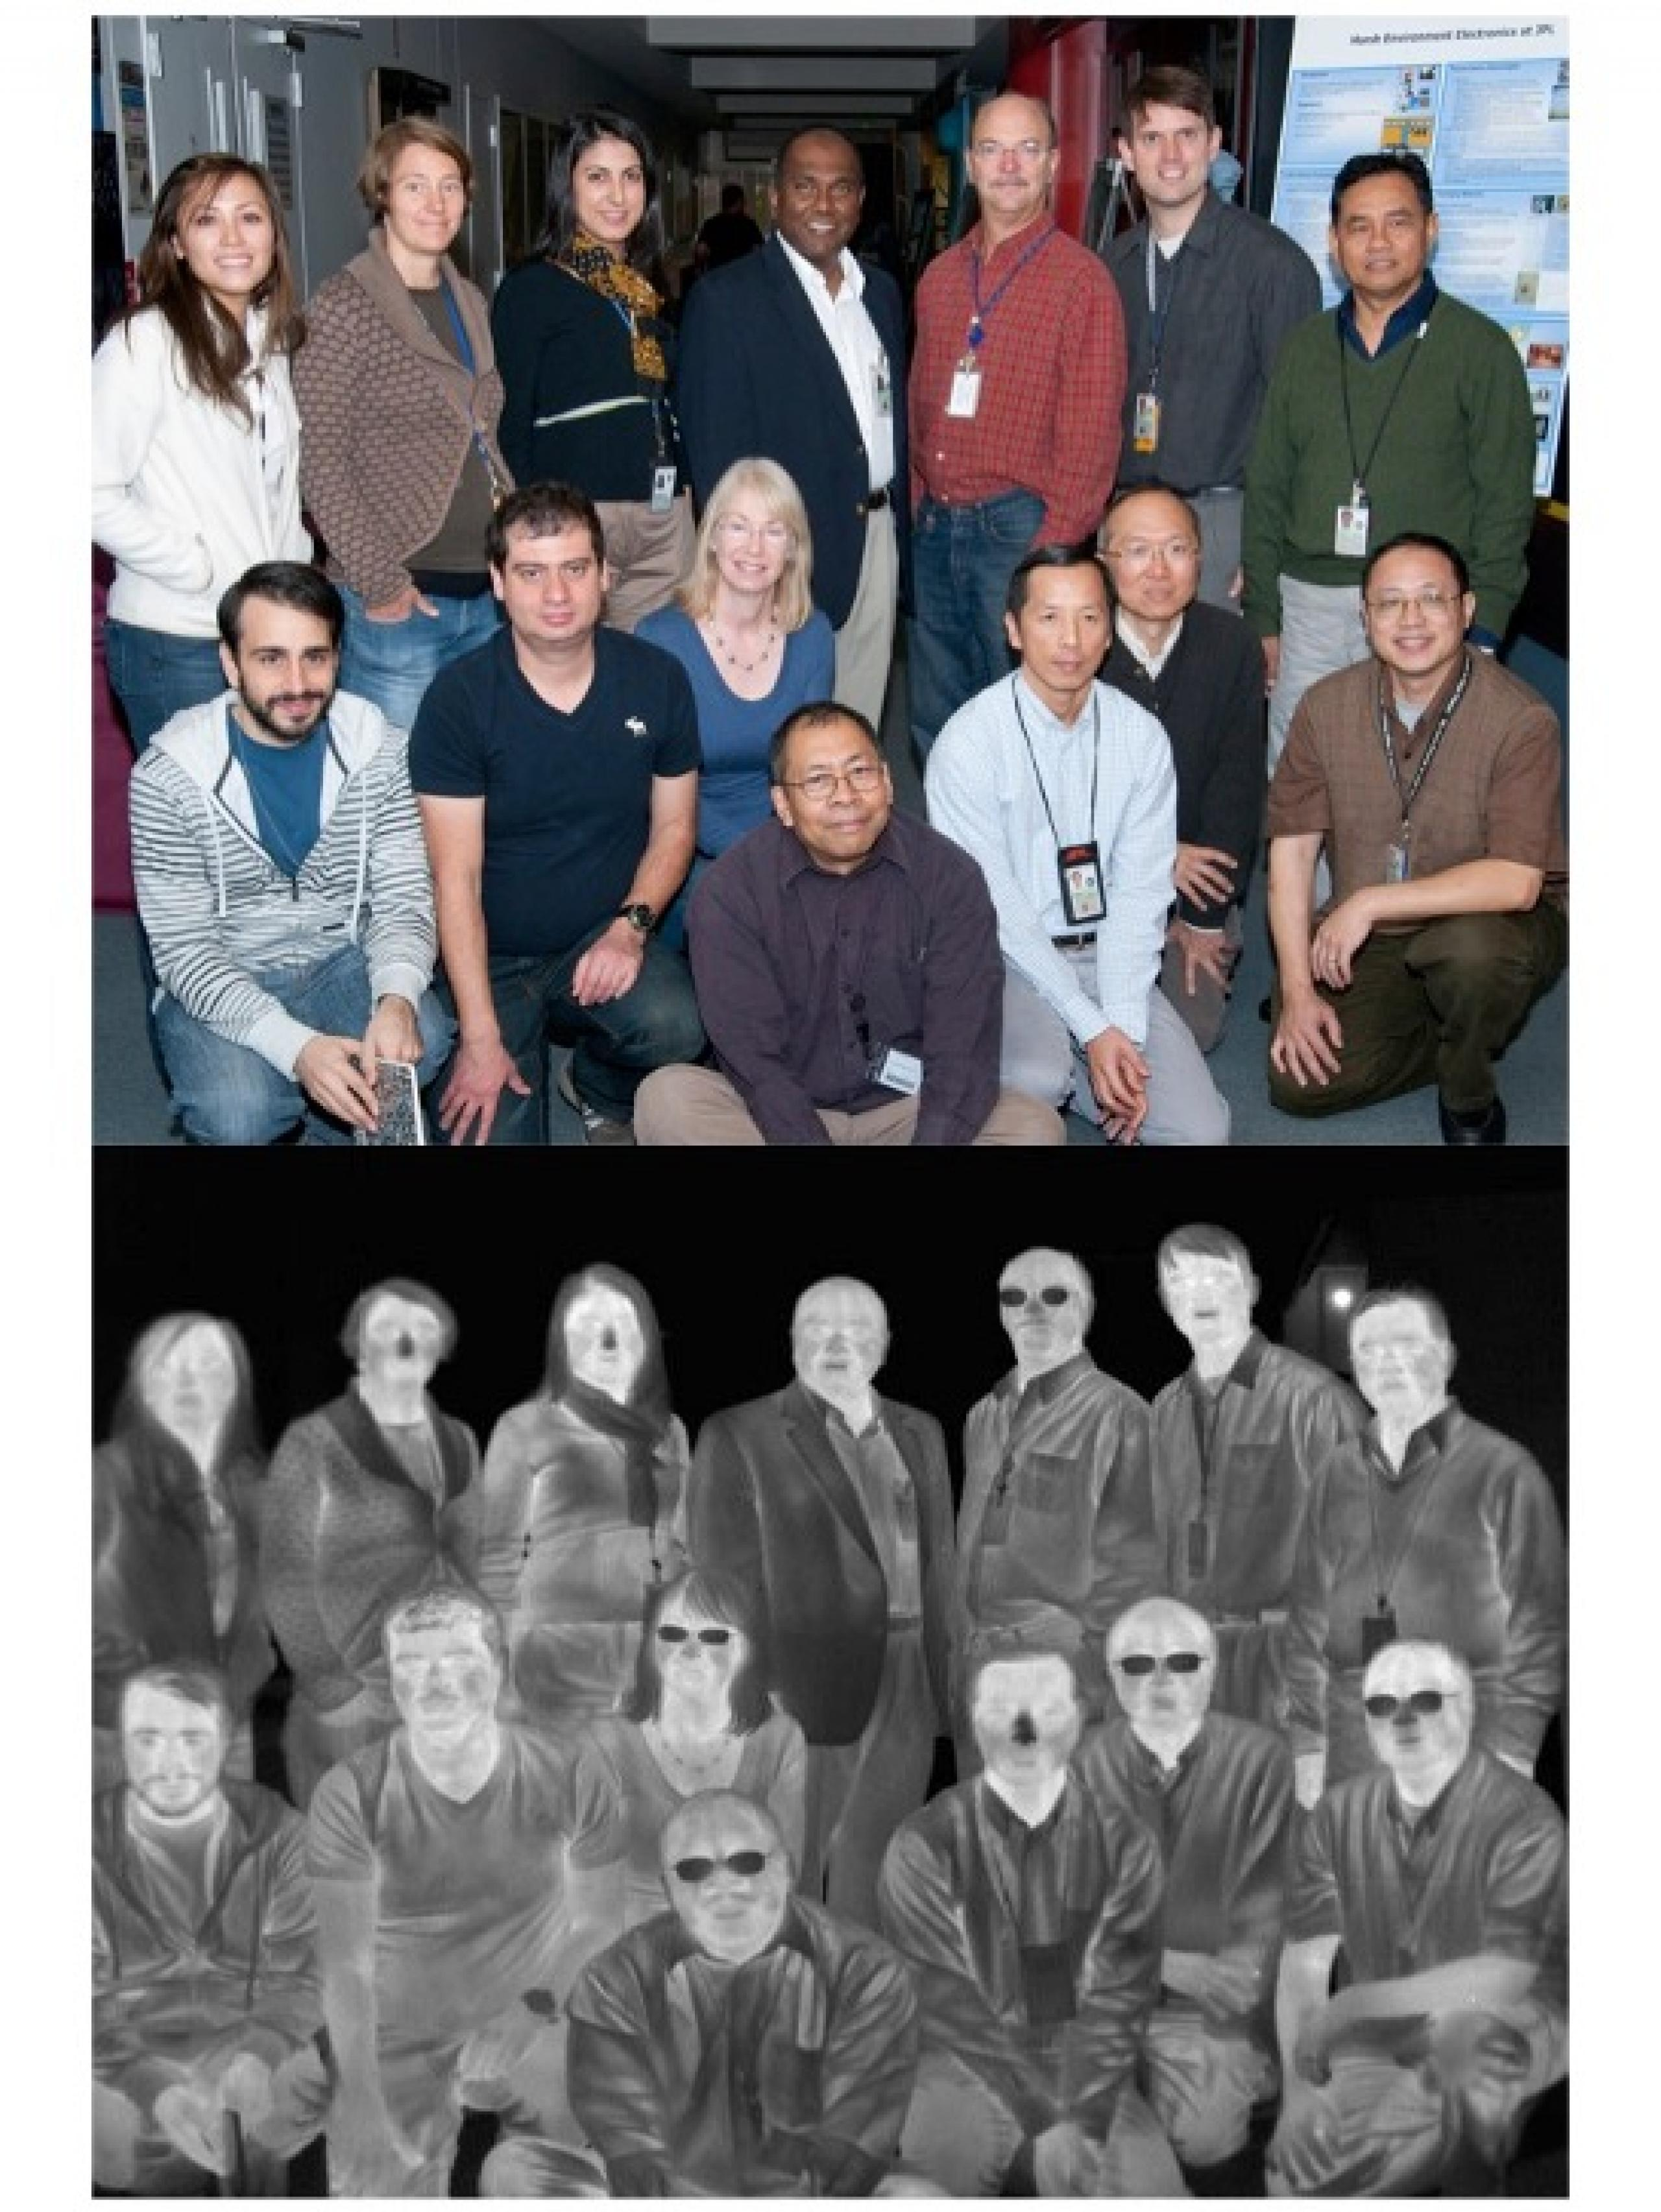 Color photo of Hot Bird team above a black and white infrared photo of the same team.